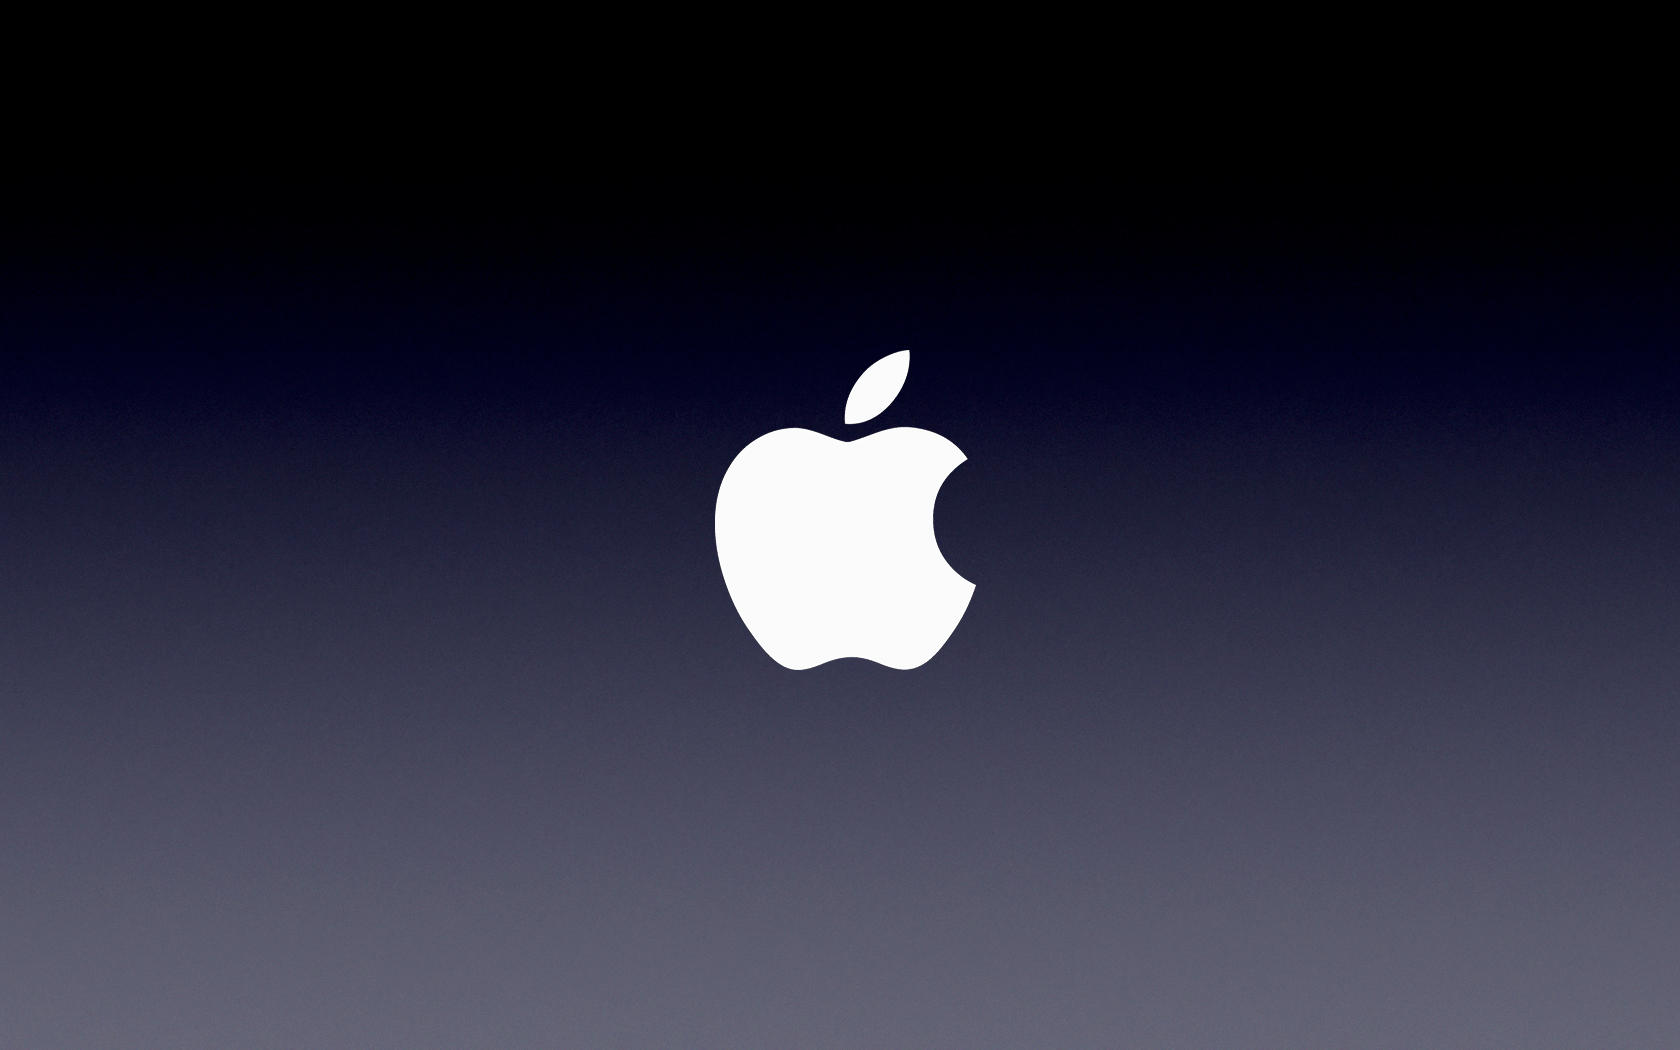 Apple Keynote Wallpapers by igabapple